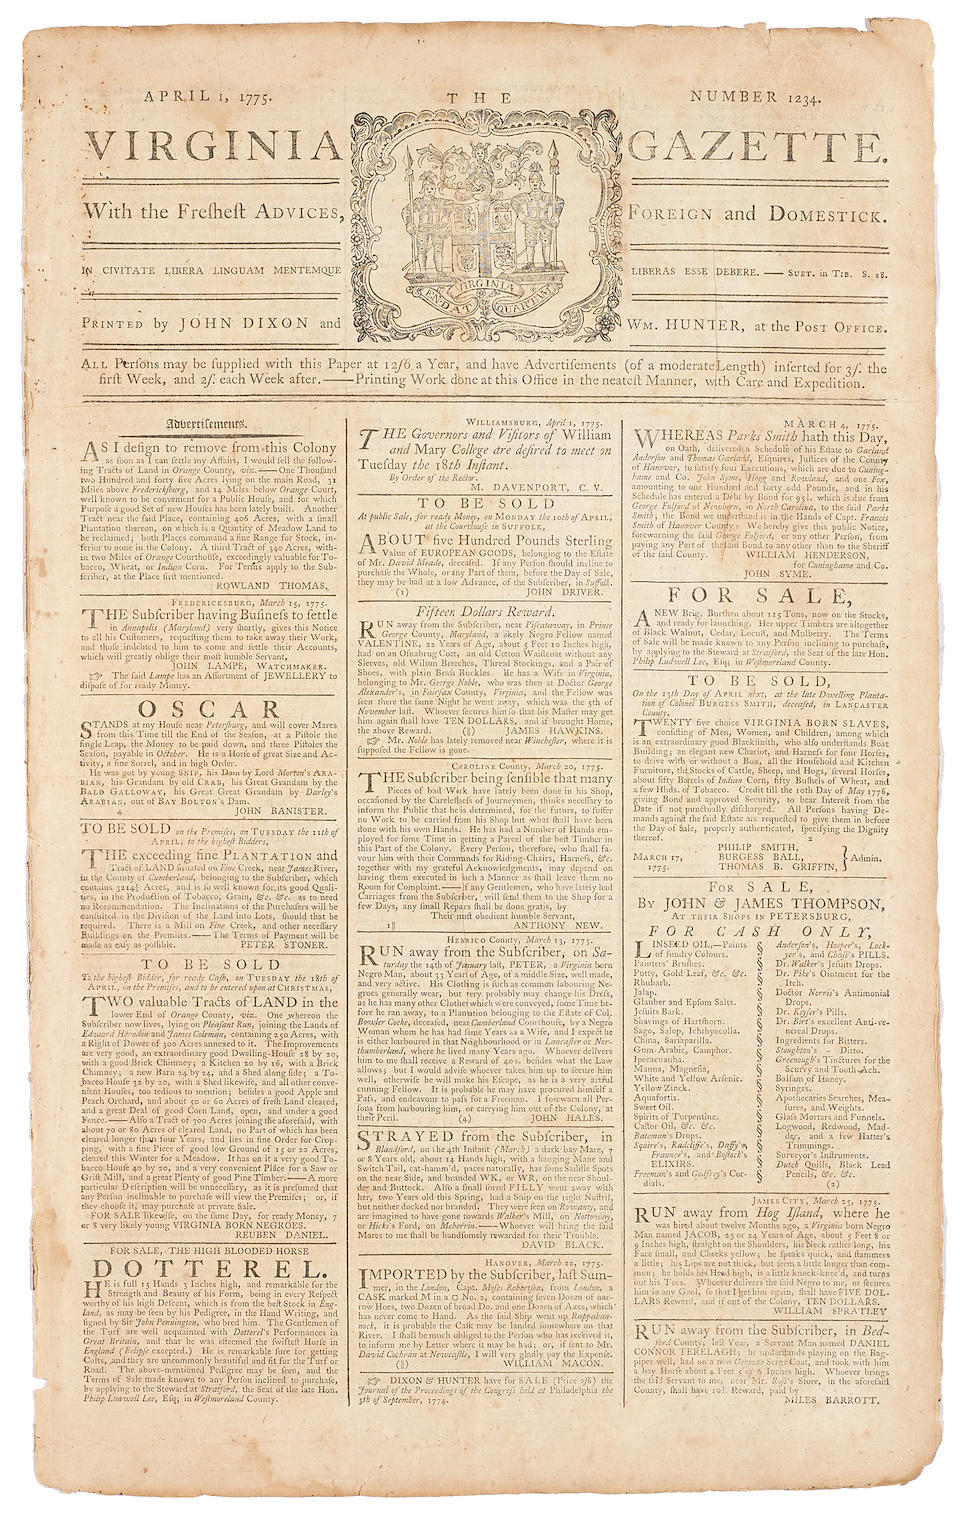 """ONLY CONTEMPORARY REPORT OF PATRICK HENRY'S FAMOUS """"GIVE ME LIBERTY OR GIVE ME DEATH"""" SPEECH TO VIRGINIA CONVENTION. Virginia Gazette, no 1234.   [Richmond]: John Dixon and Wm. Hunter, April 1, 1775."""